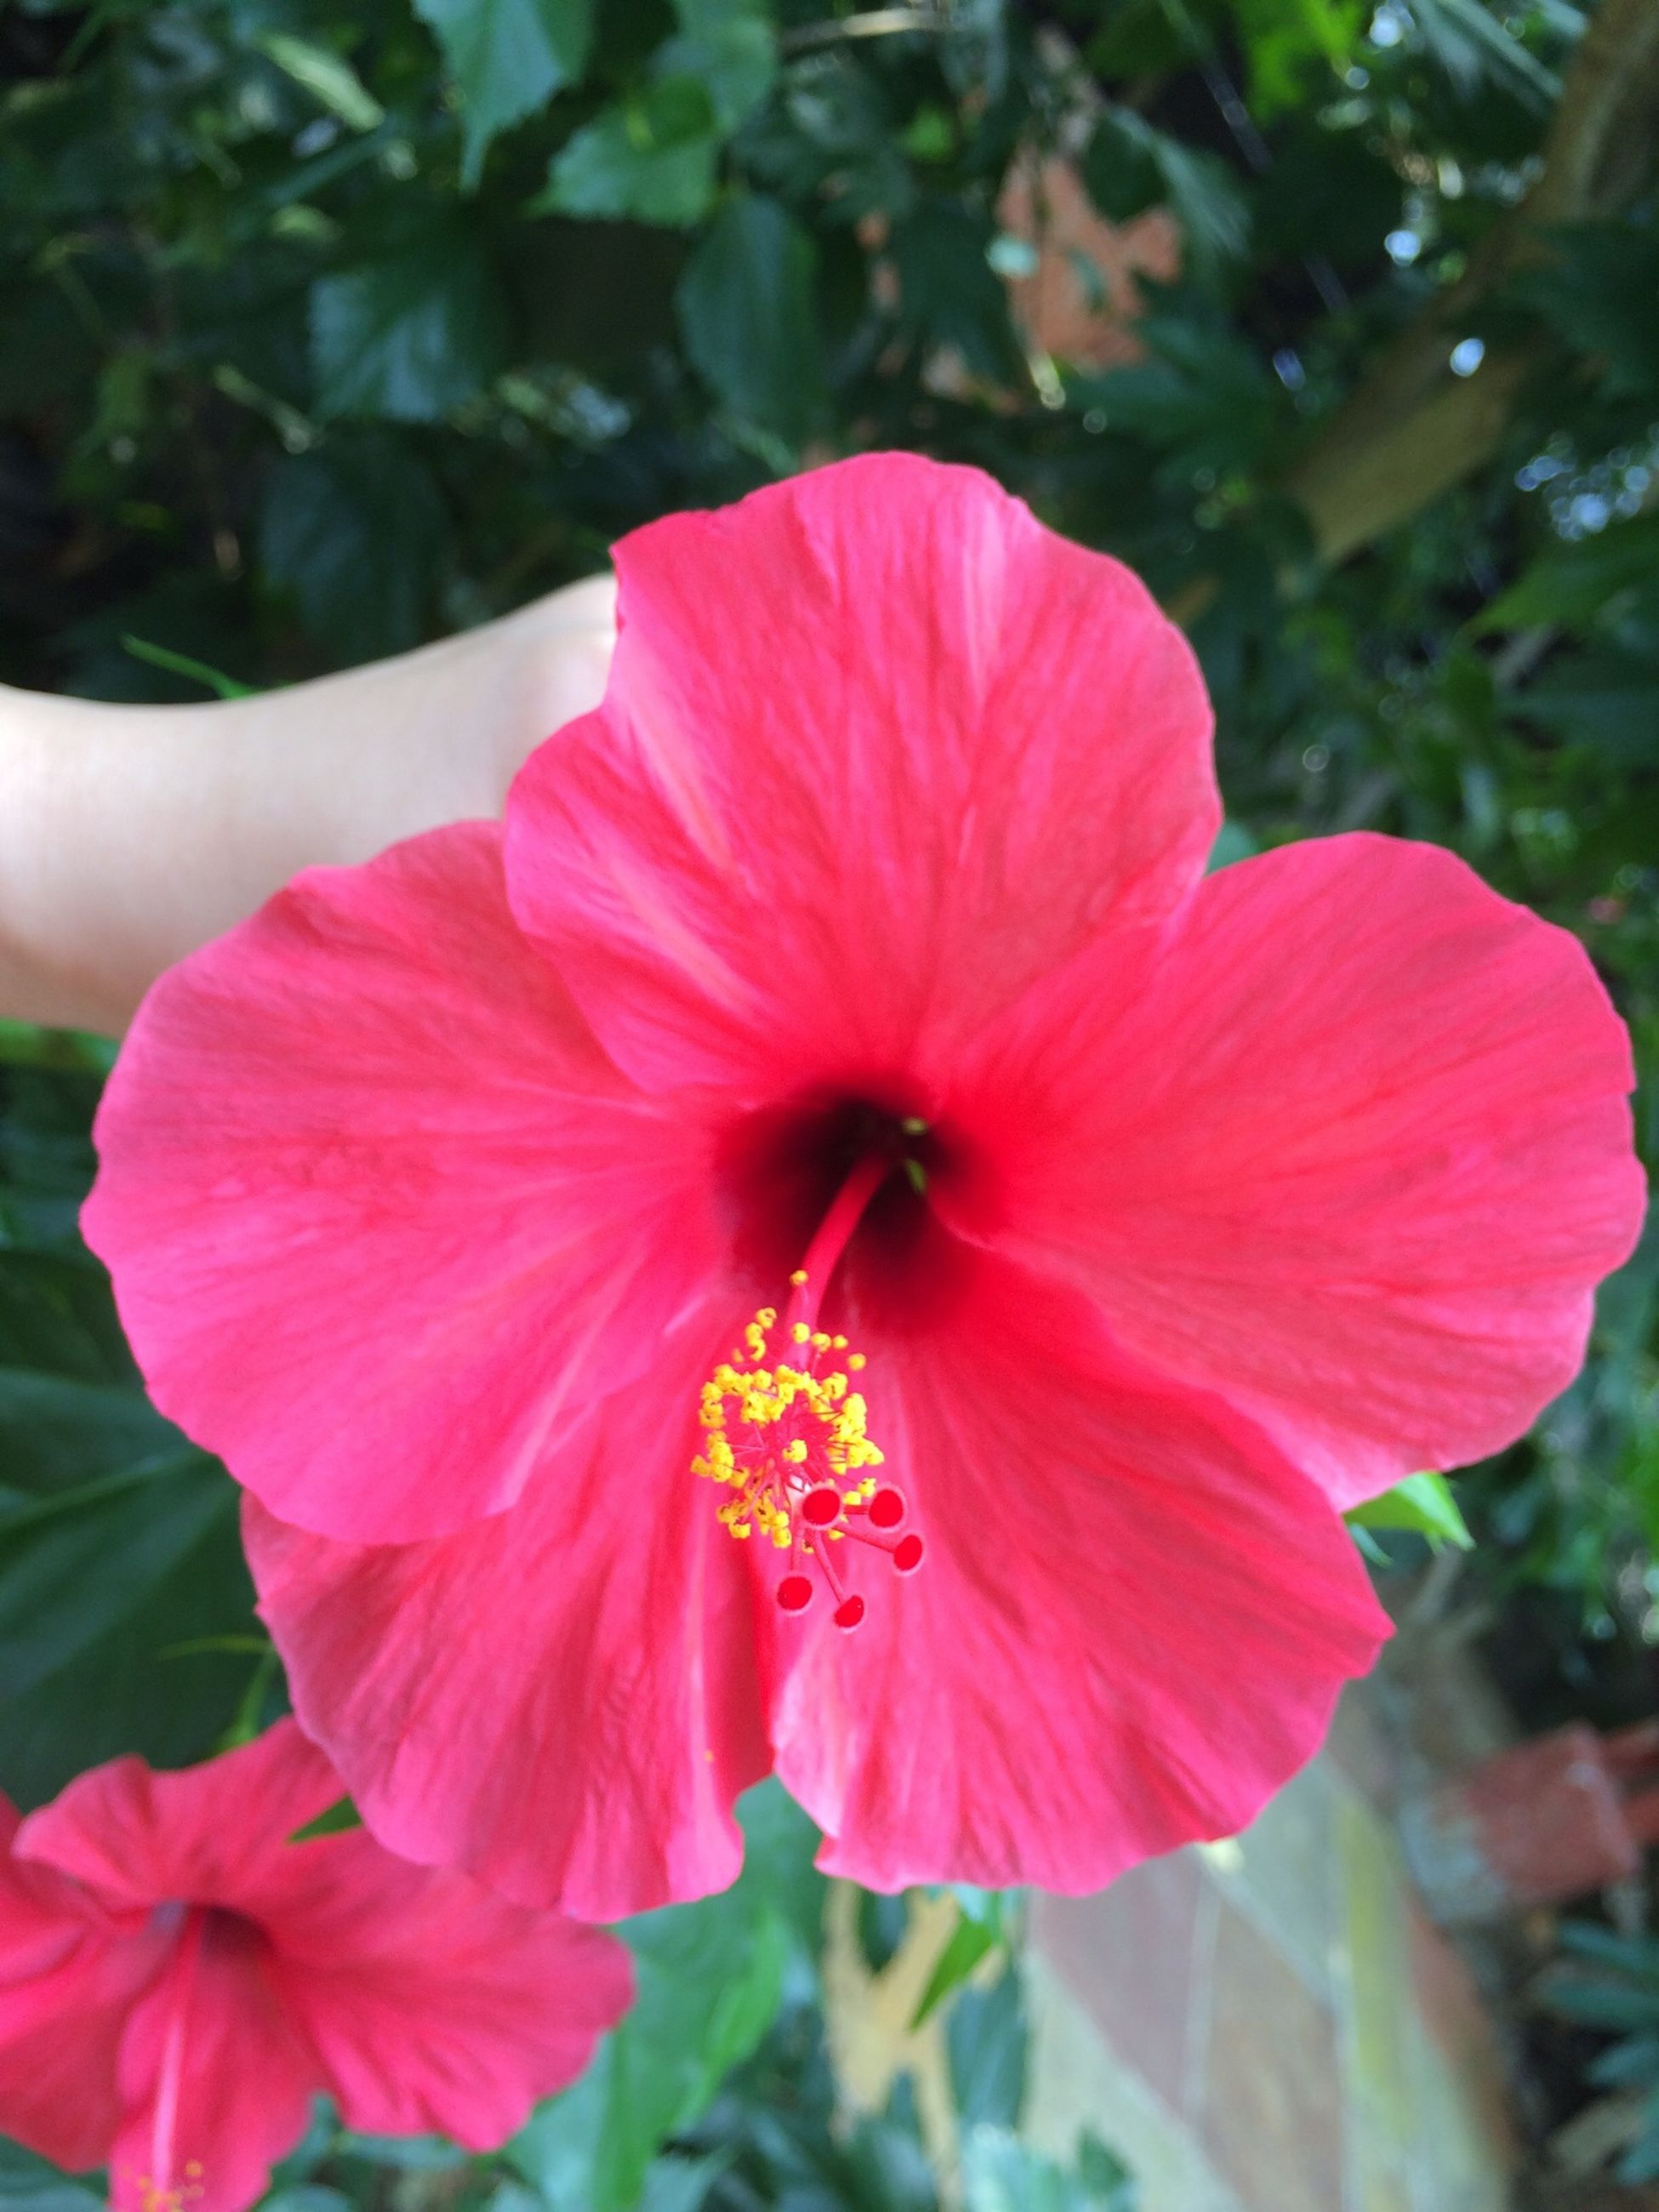 flower, petal, freshness, flower head, fragility, growth, beauty in nature, single flower, close-up, focus on foreground, stamen, blooming, hibiscus, pollen, nature, red, pink color, in bloom, plant, blossom